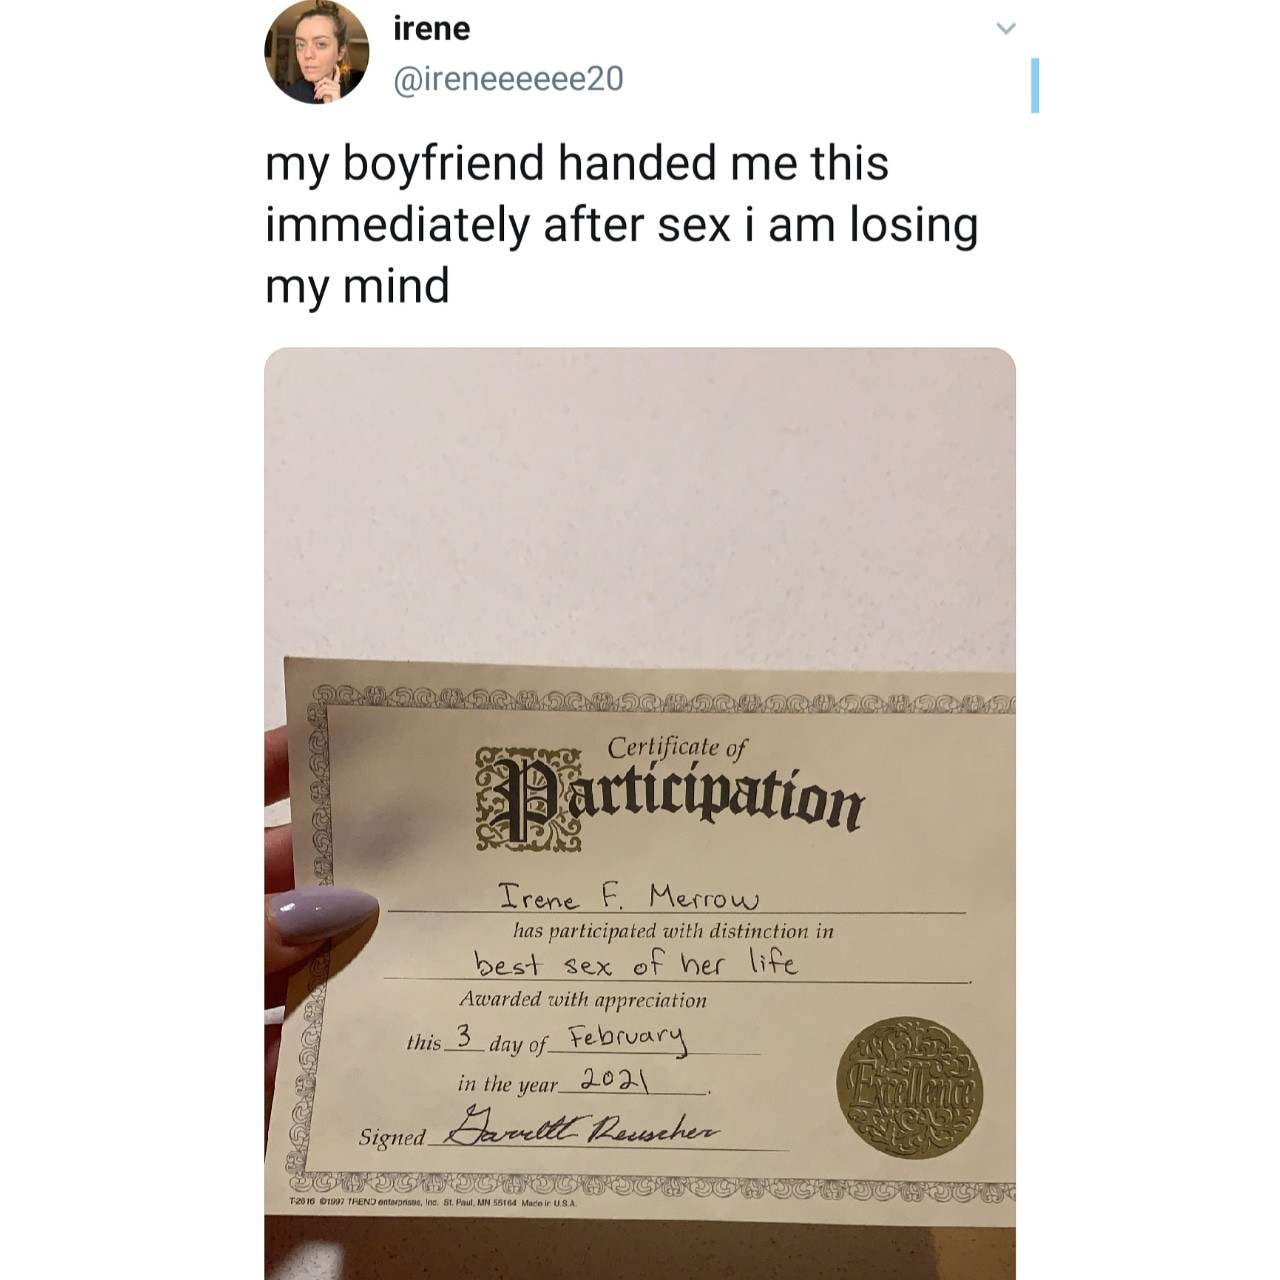 Woman receives certificate from her boyfriend immediately after sexual intercourse